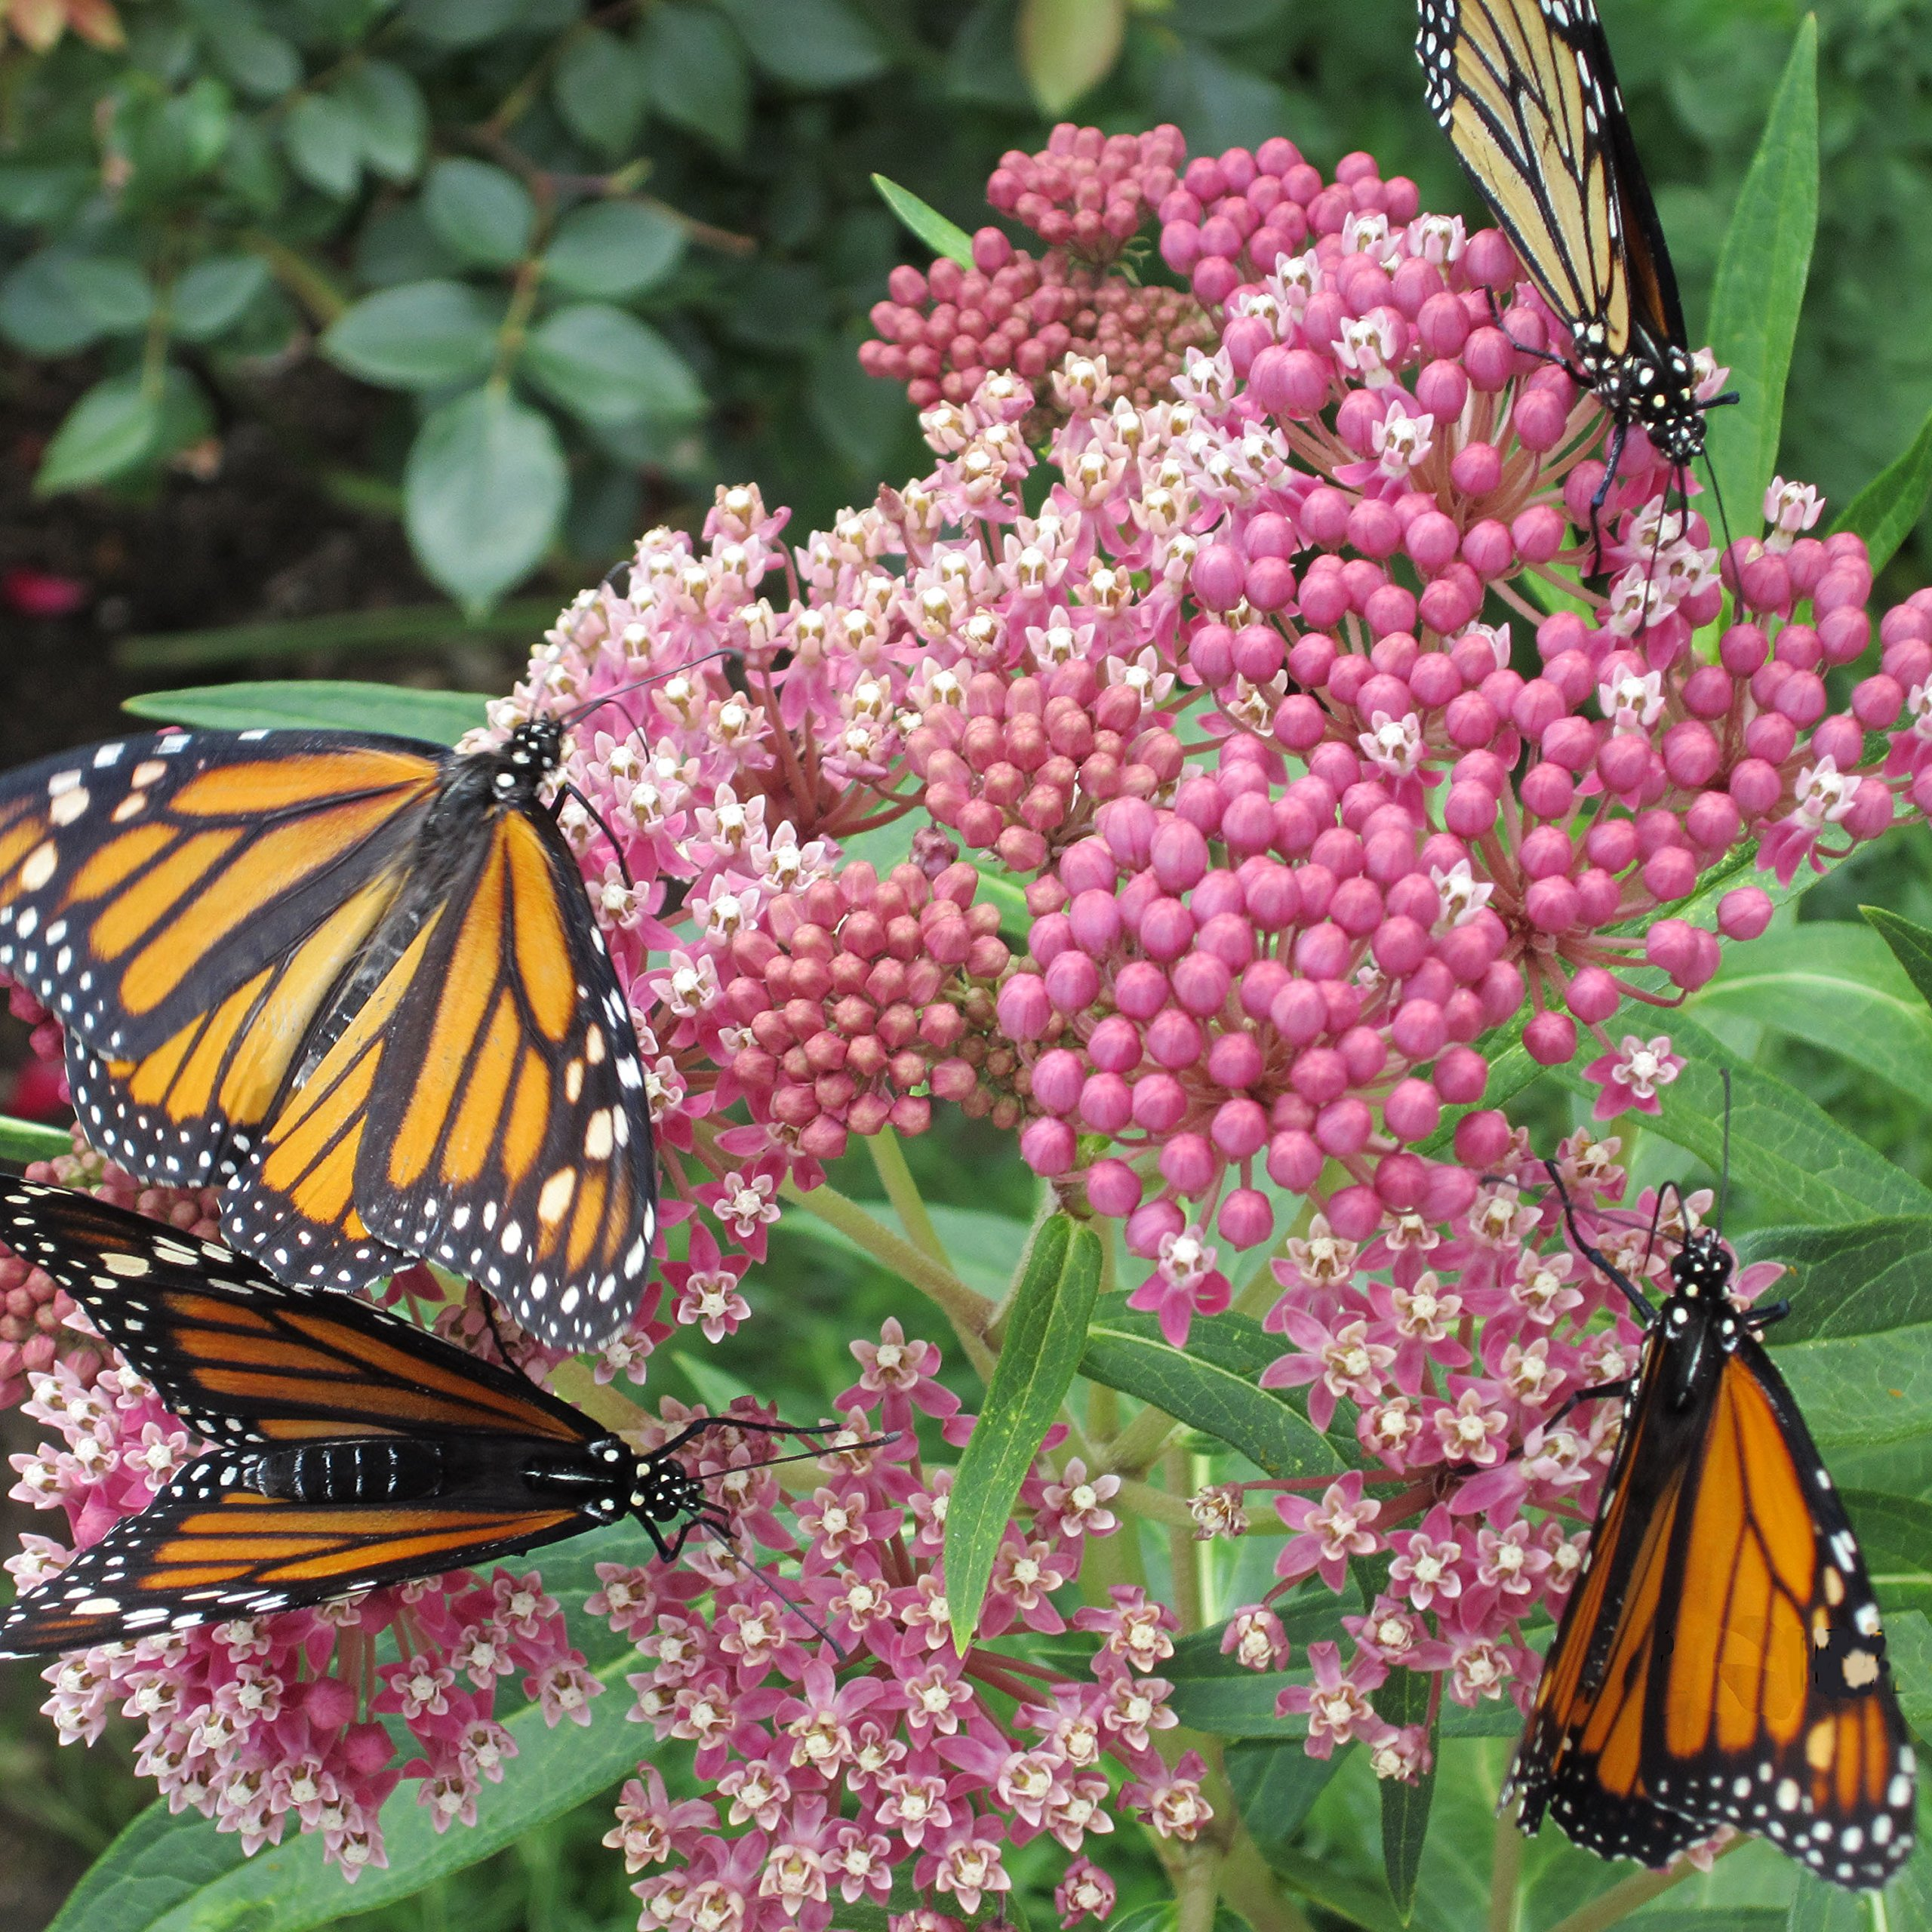 Swamp Milkweed Seed Balls for Fall Planting (Asclepias incarnata) (20) by Seed-Balls.com